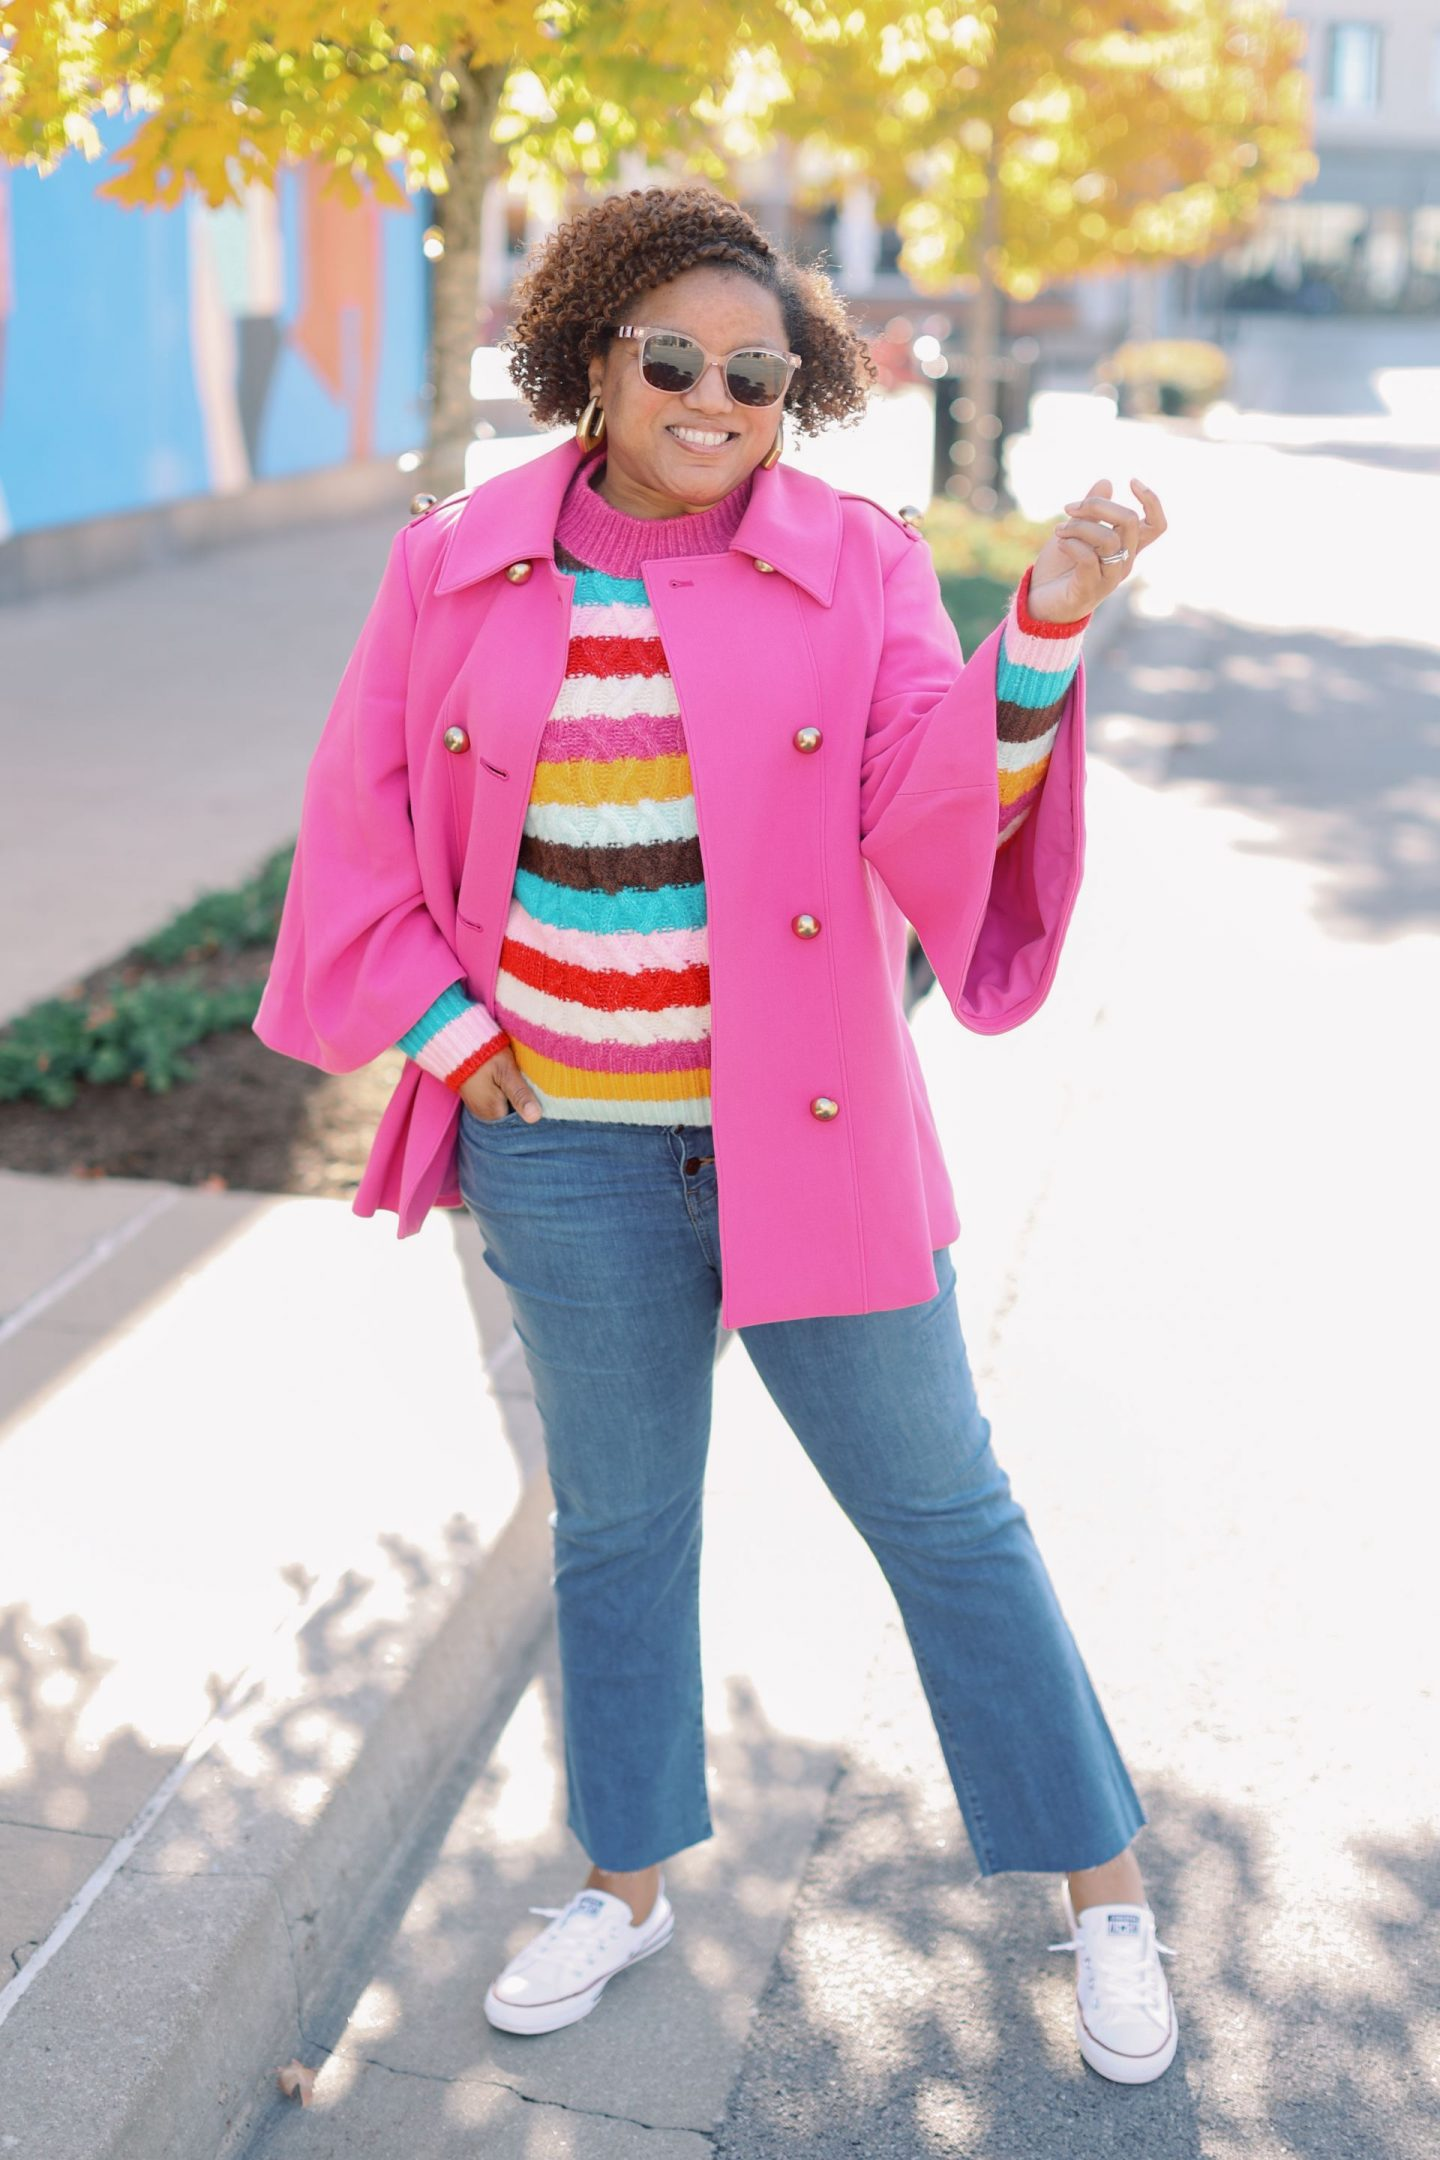 Pink Clothing by popular Kentucky fashion blog, Really Rynetta: image of a woman wearing a colorful stripe sweater, jeans, white converse sneakers, and pink cape.